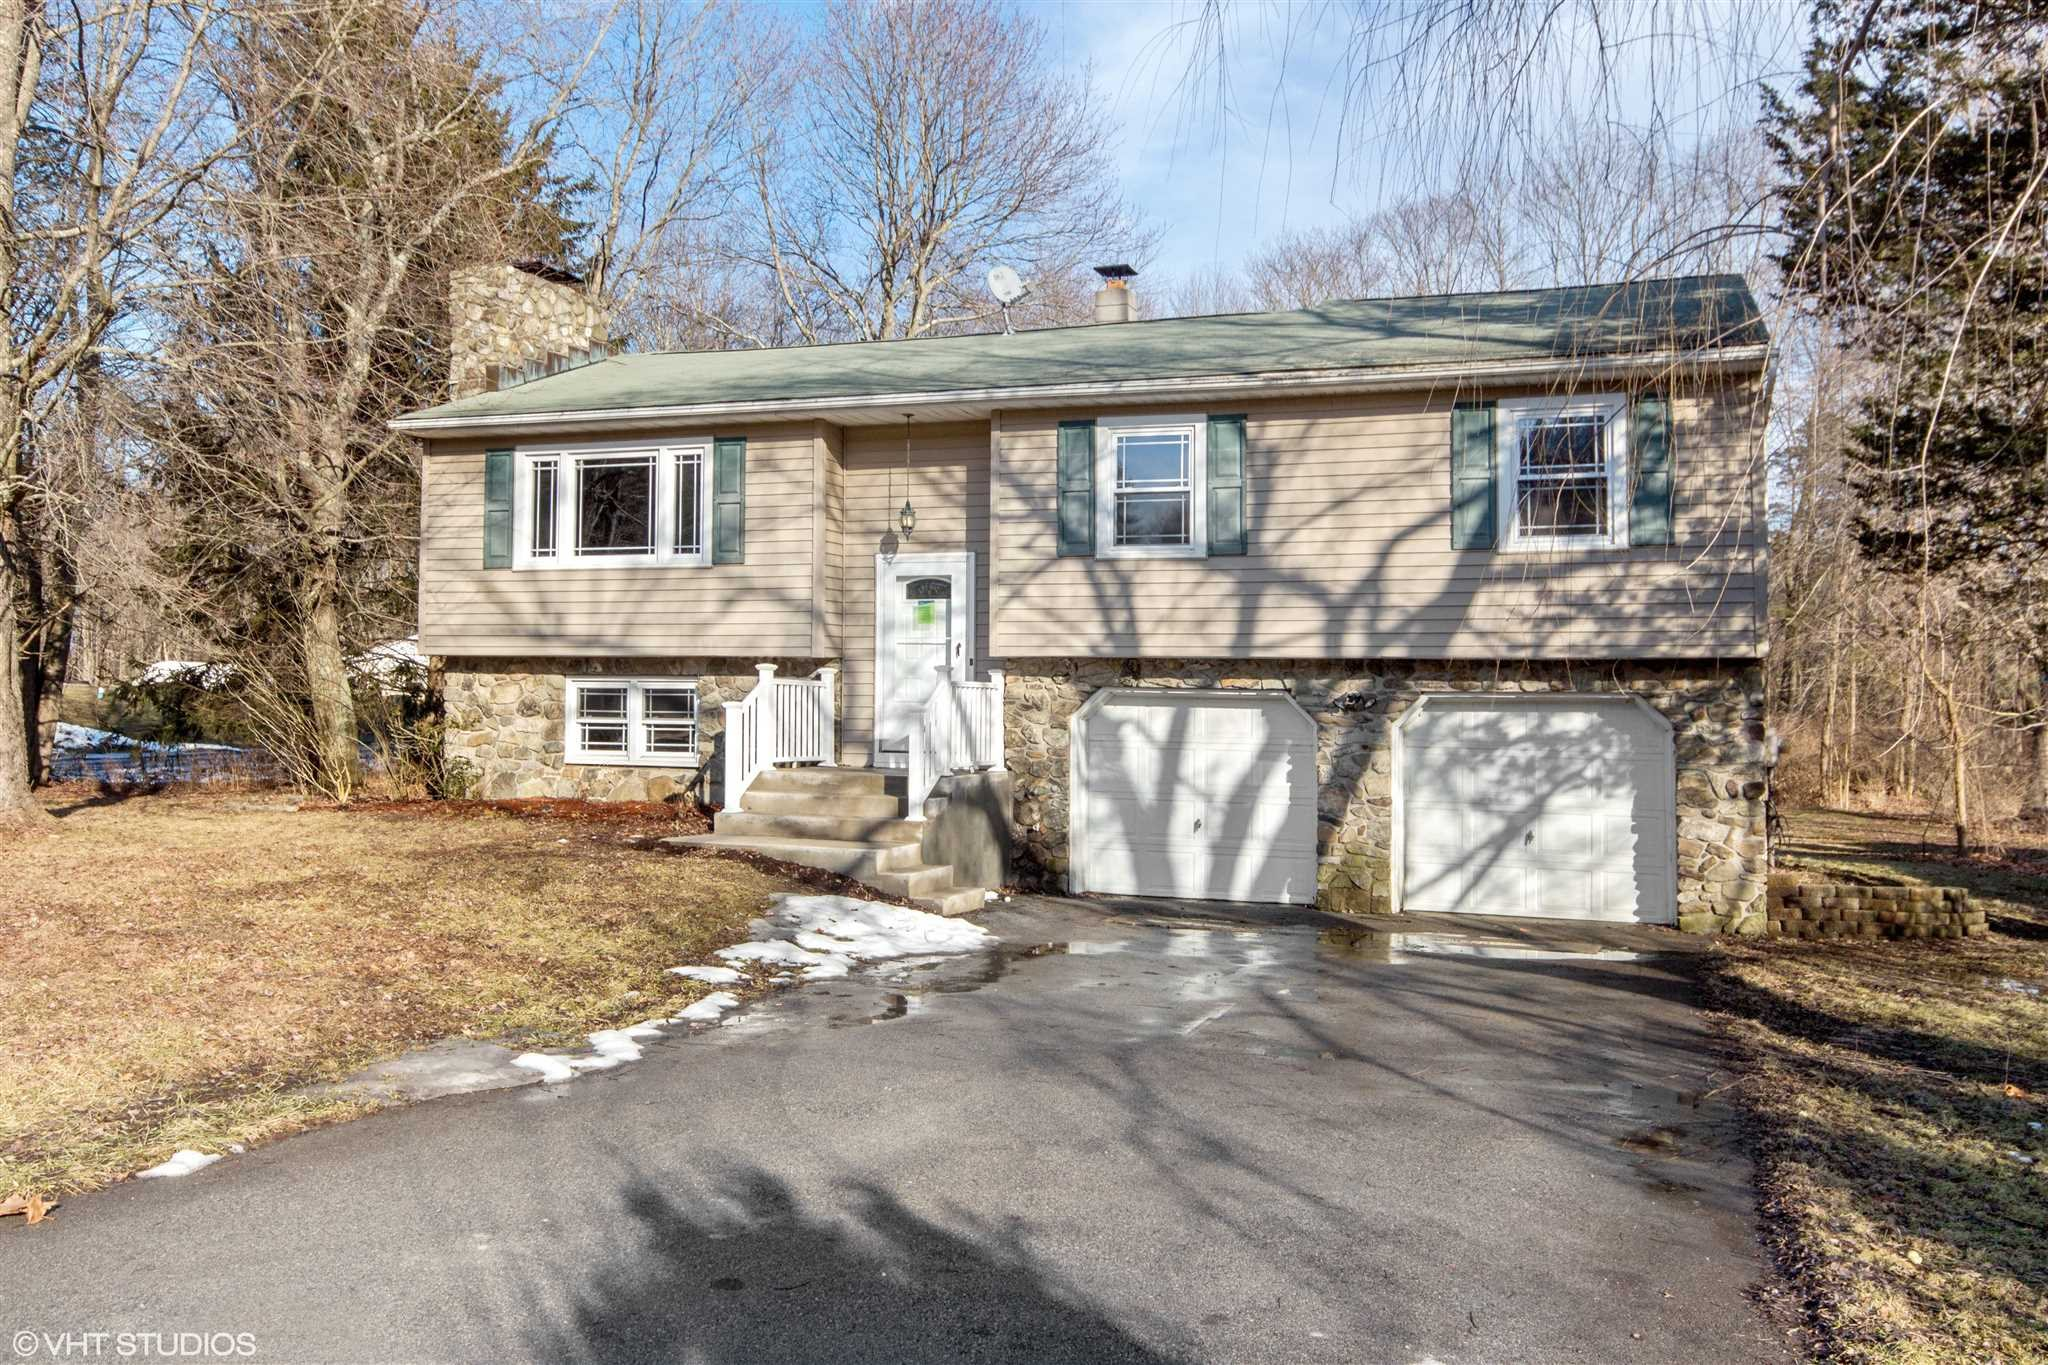 Single Family Home for Sale at 64 FOREST VALLEY Road 64 FOREST VALLEY Road Pleasant Valley, New York 12569 United States